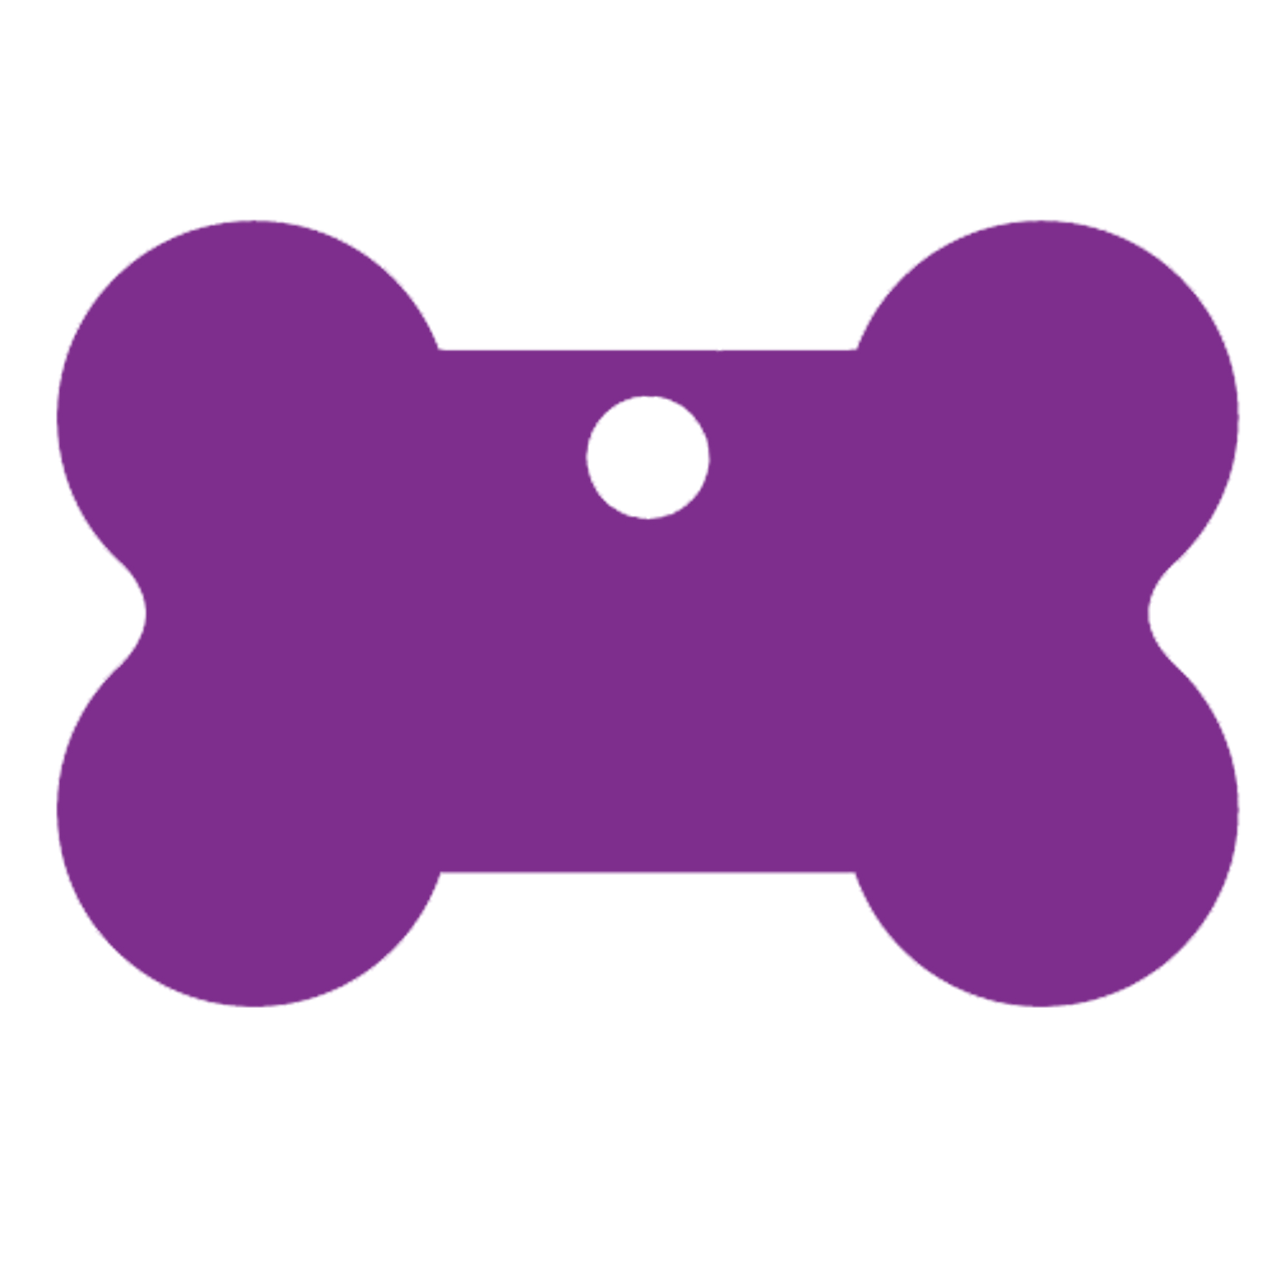 Purple bone shaped pet dog tag made of anodized aluminum. This tag is commonly purchased by pet stores, animal shelters and government organizations.